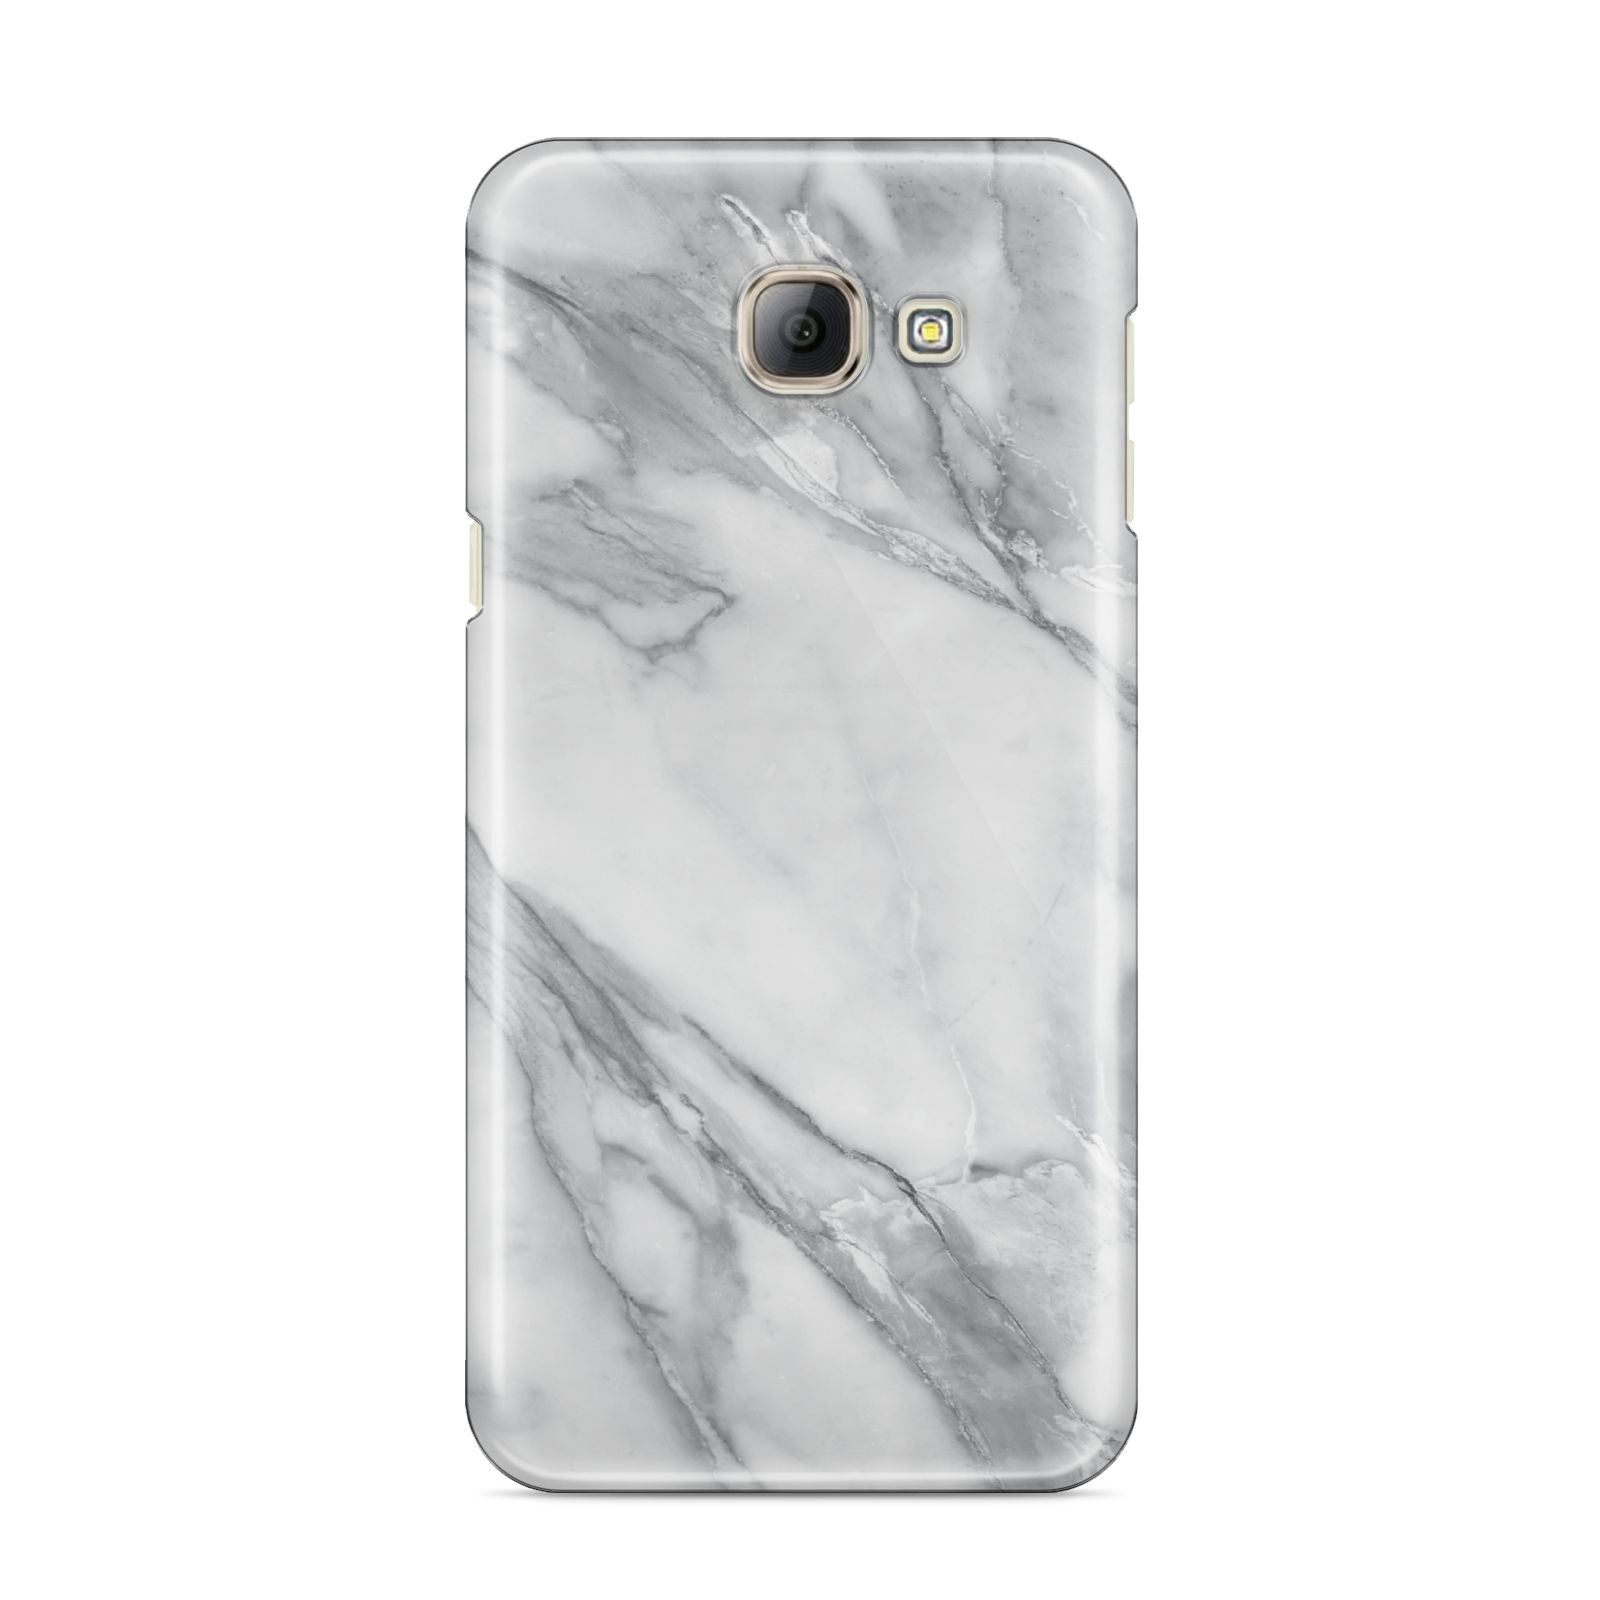 Faux Marble Effect White Grey Samsung Galaxy A8 2016 Case